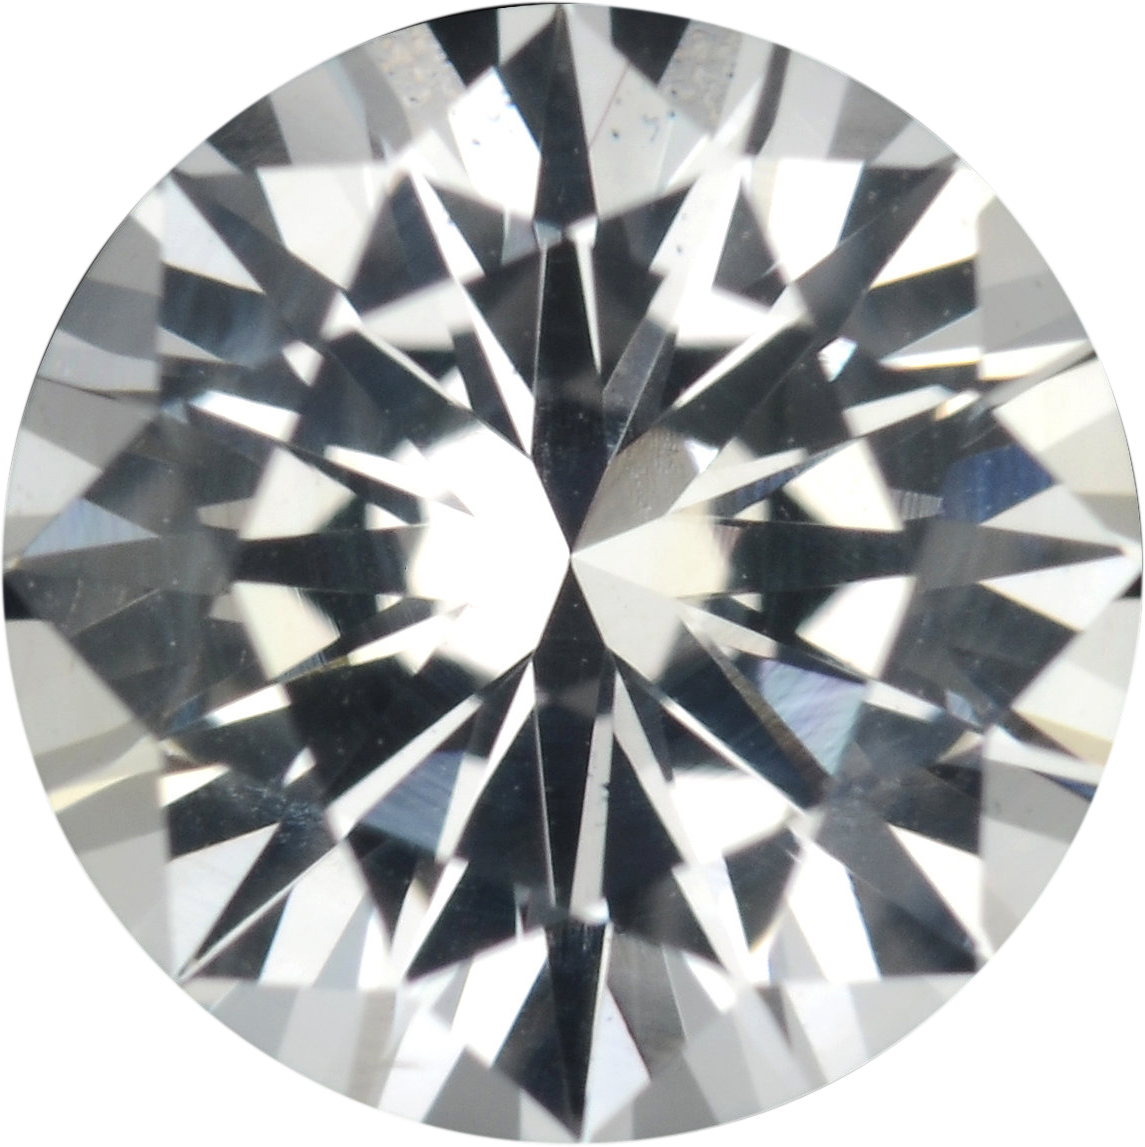 1.16 carats White Loose Sapphire Gemstone in Round Cut, 6.41 mm